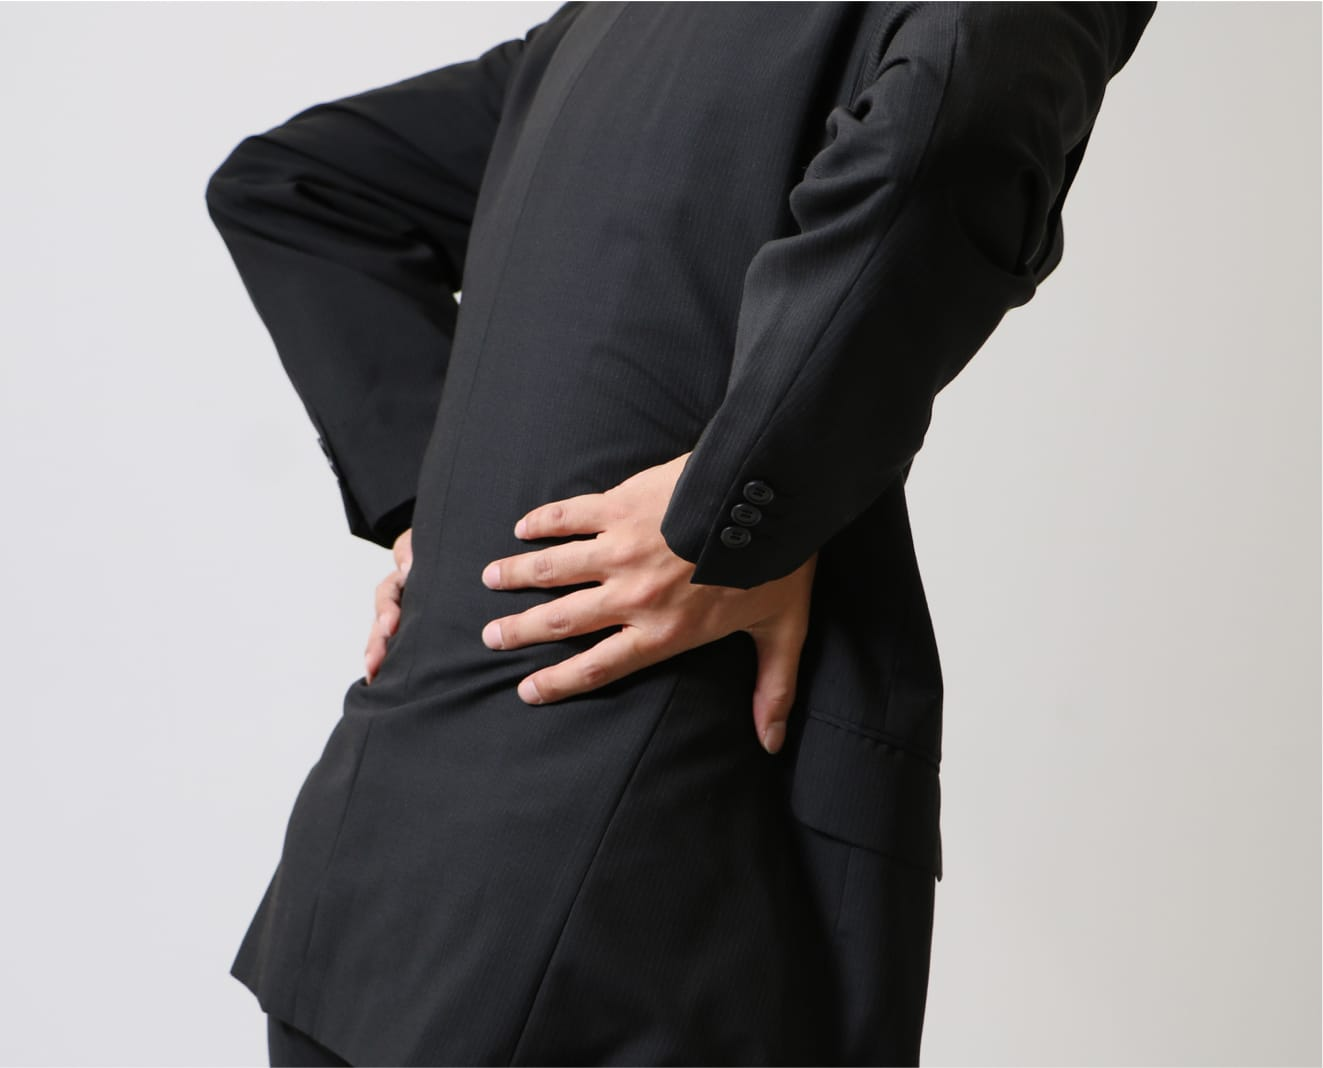 Herniated Disc Surgery NYC